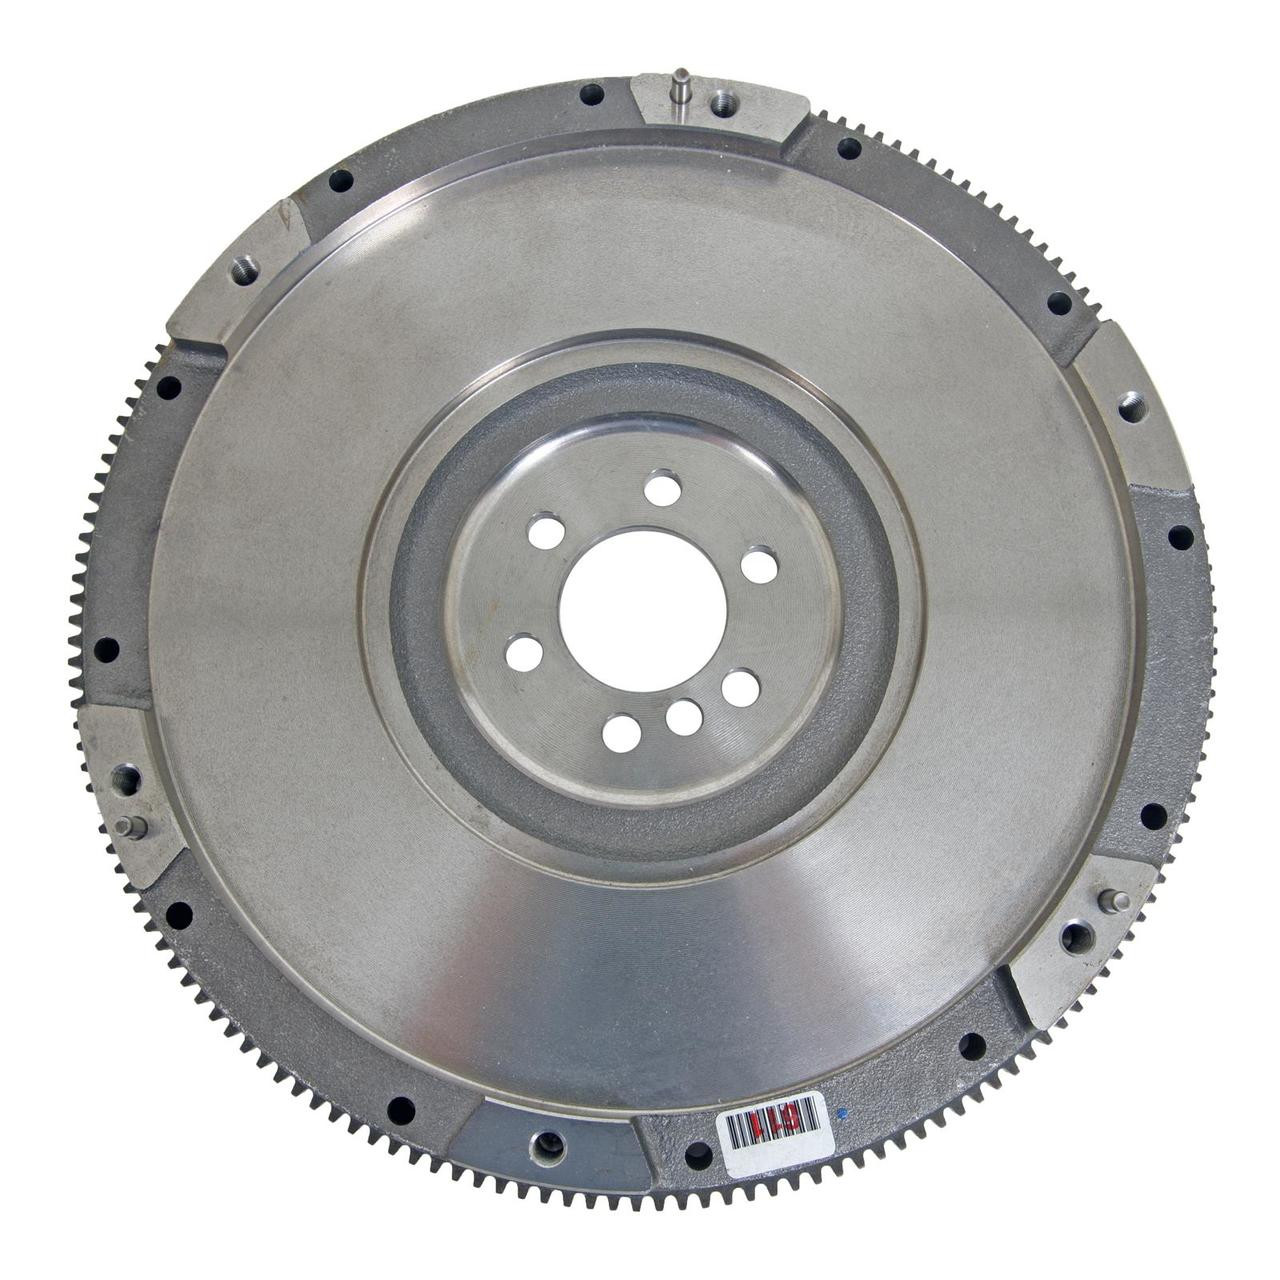 Ls1 Engine Transmission Package: LS7 Clutch Kit, Will Fit All LS1/LS6/LS2/LS7/LS3